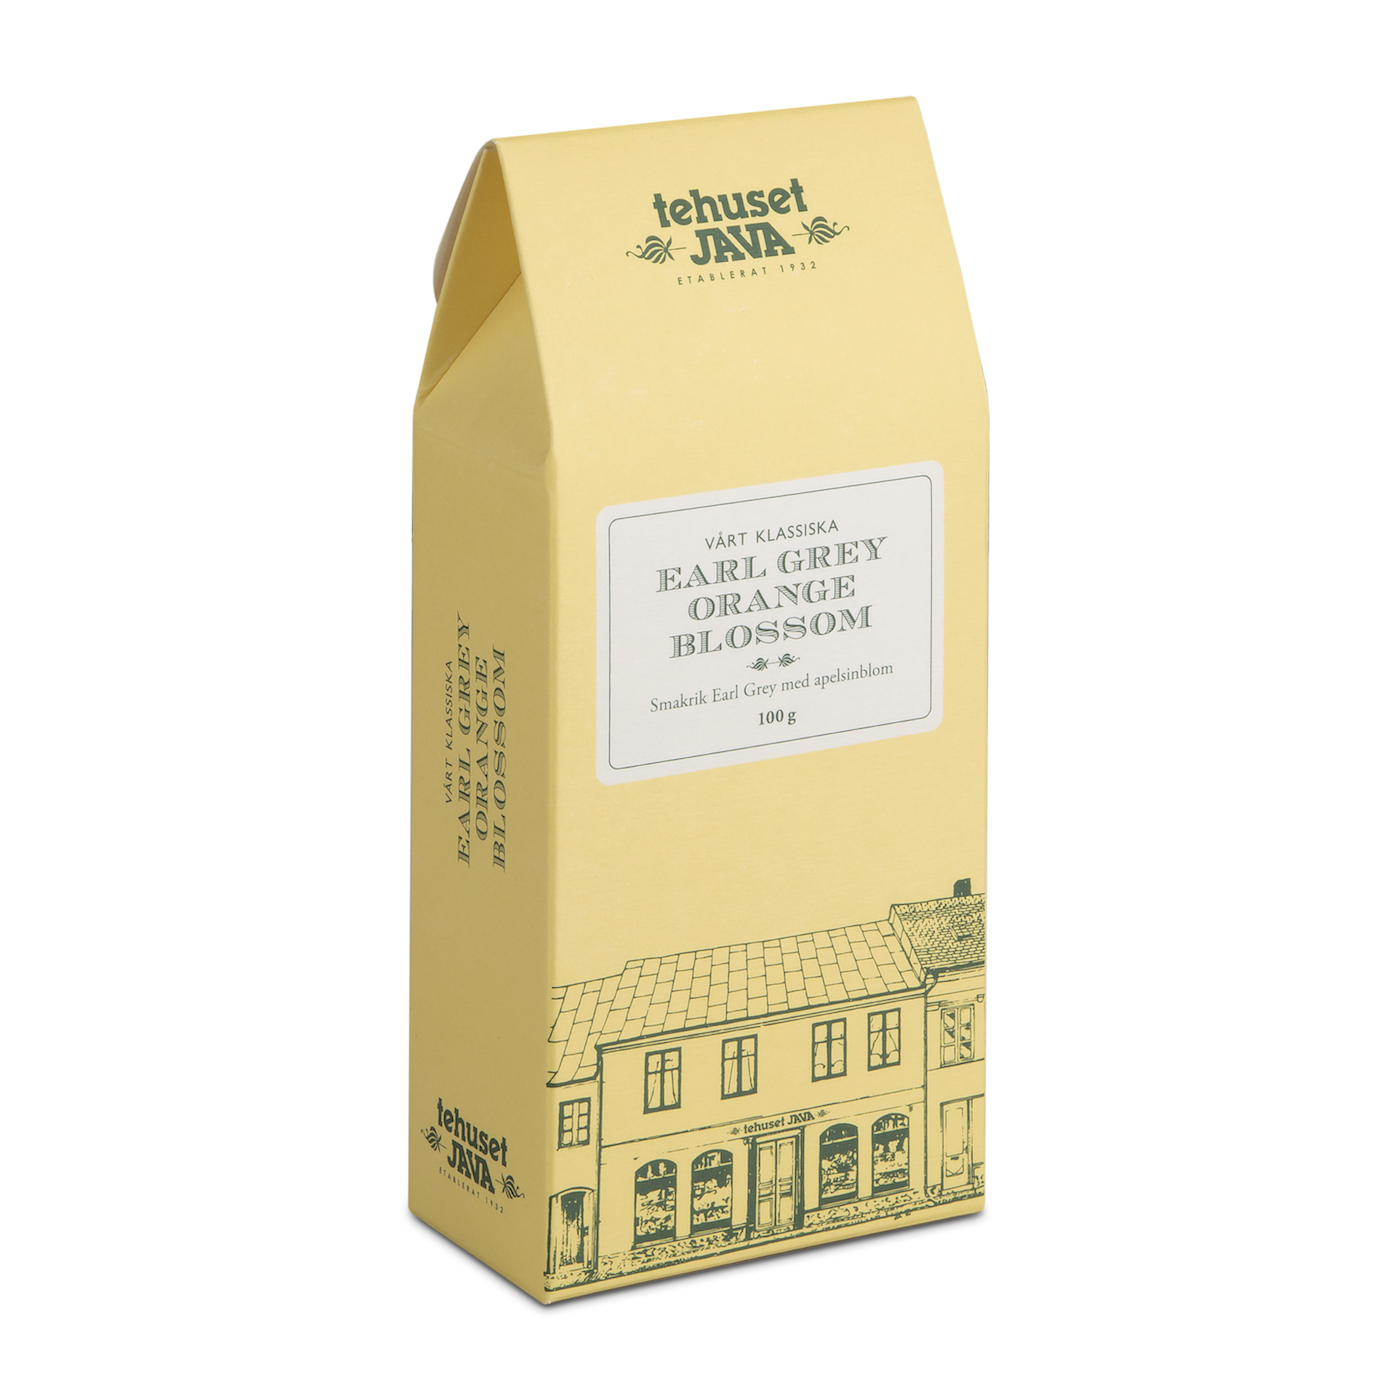 Earl Grey Orange Blossom Presentförpackad 100g